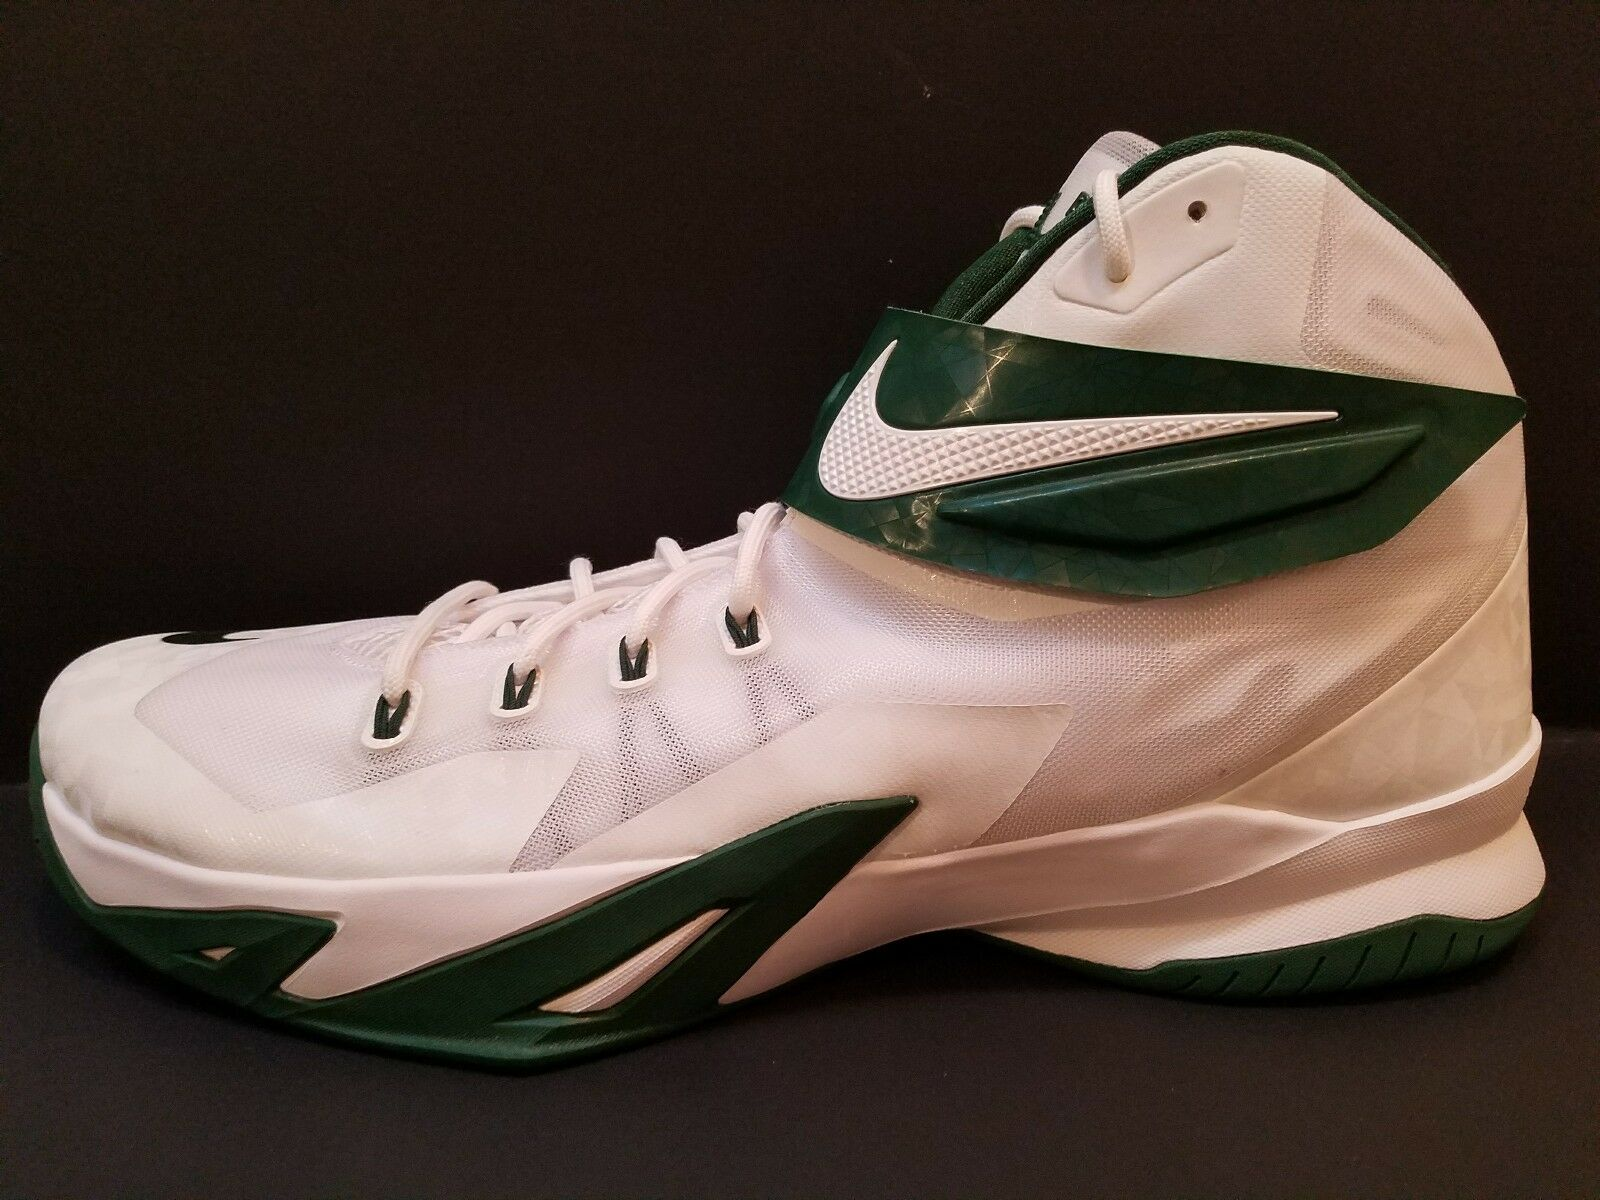 Nike Lebron James Nike Zoom Soldier Soldier Soldier Vlll Mens Green White 685780-130 Sz 17 d5696a